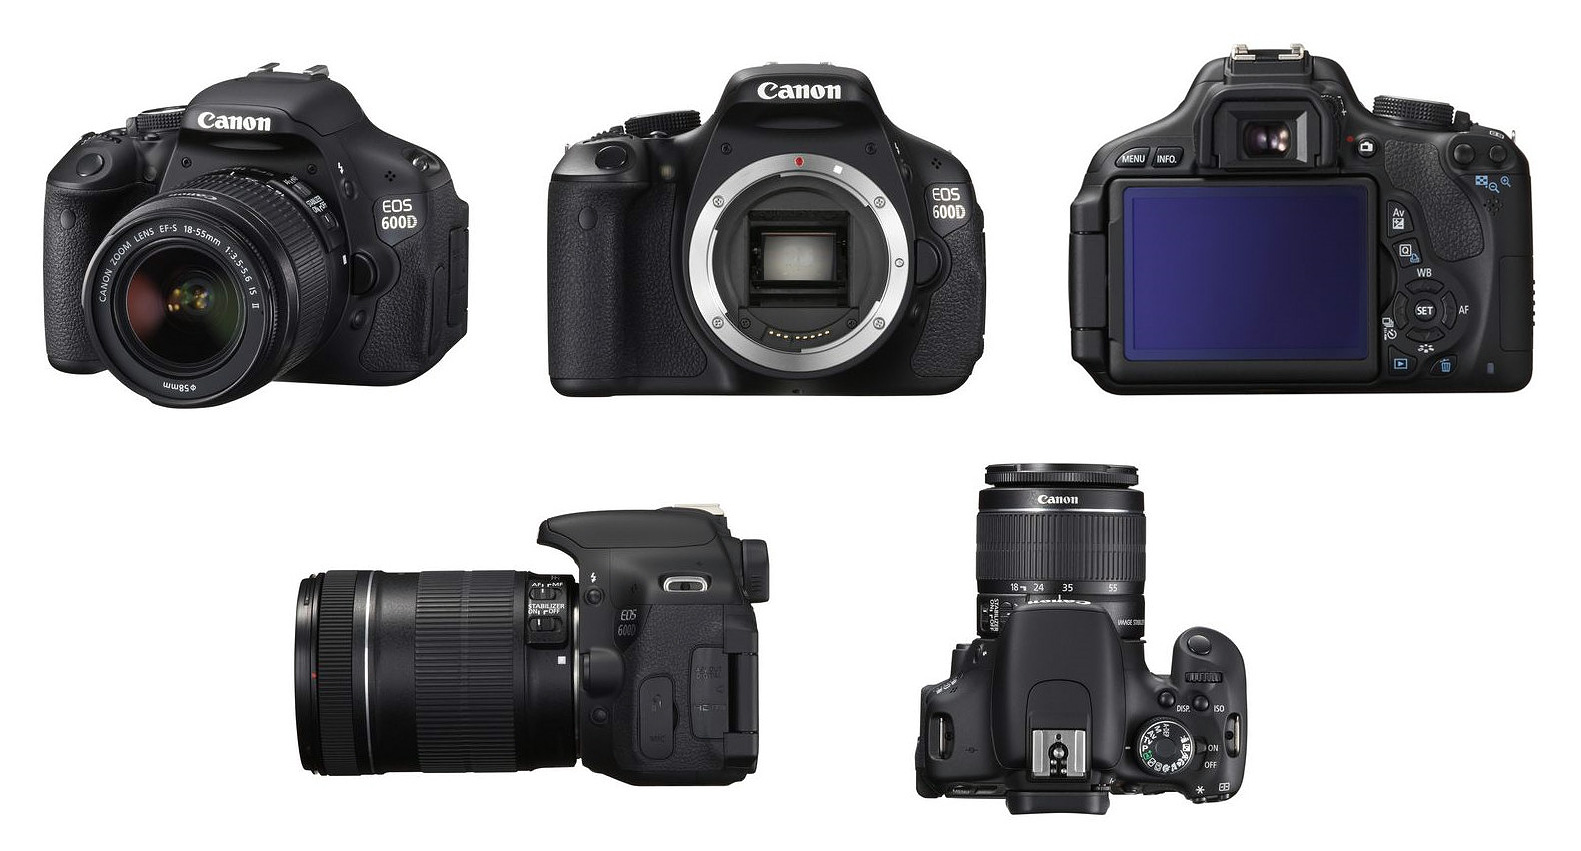 Canon EOS 600D Technical Specifications